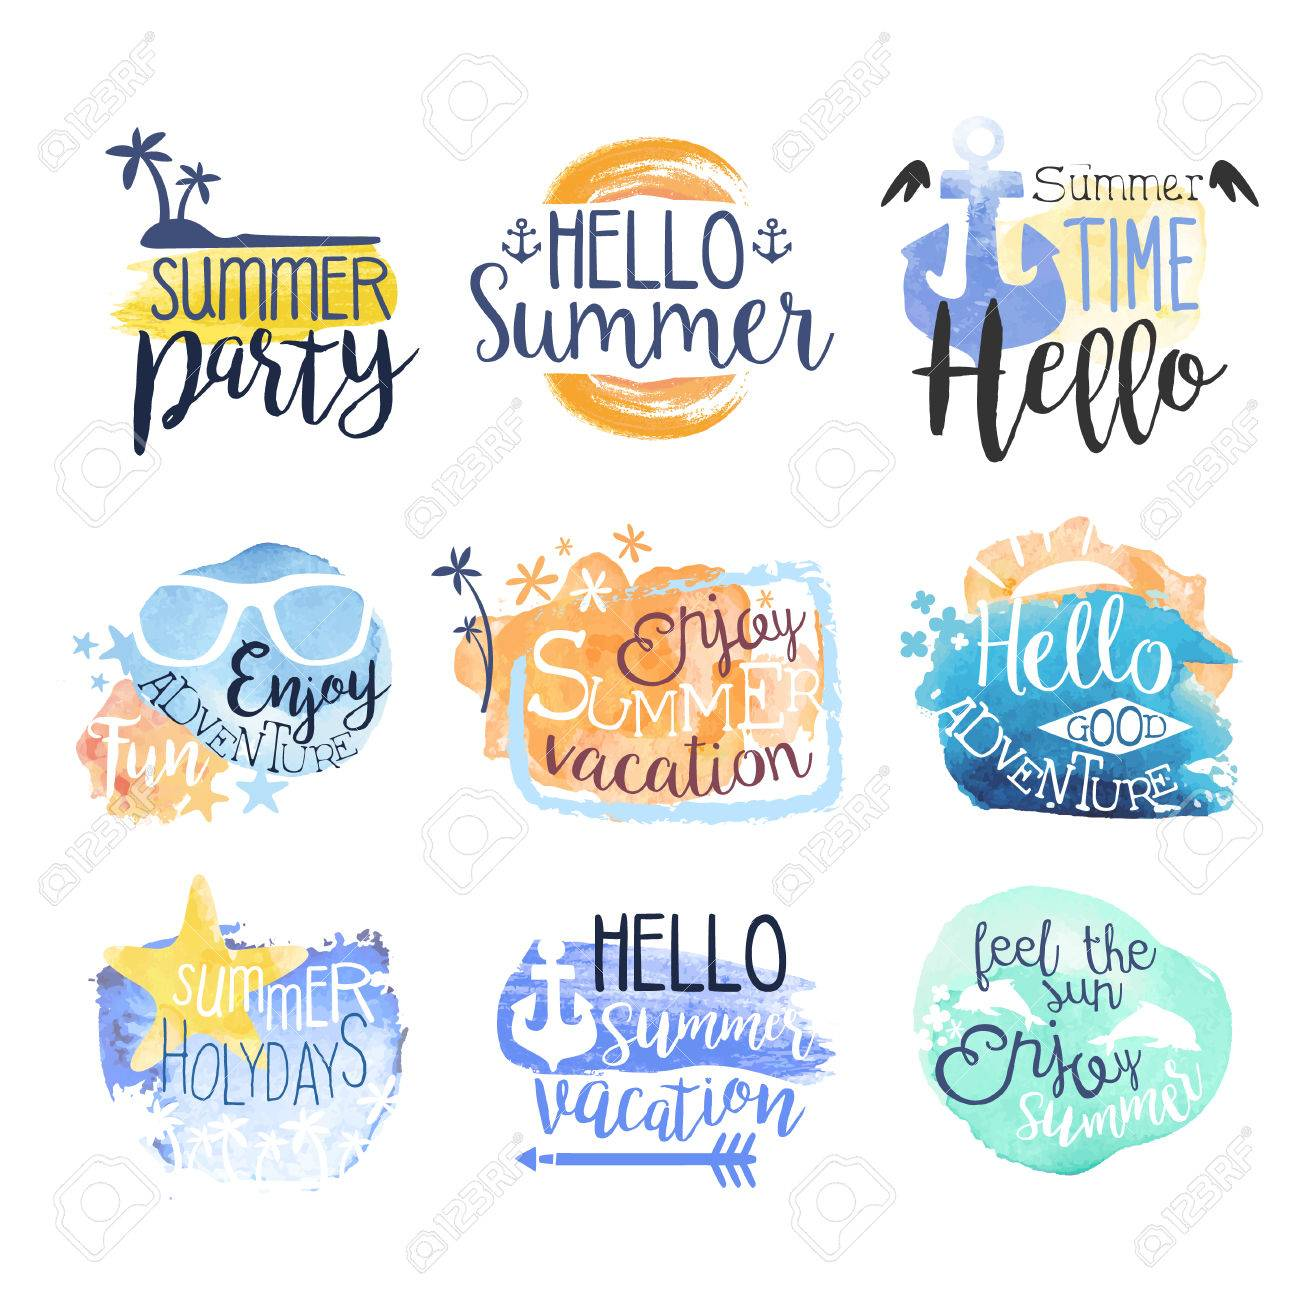 Summer Beach Vacation Promo Signs Colorful Set Of Watercolor Stylized With Text On White Background Stock